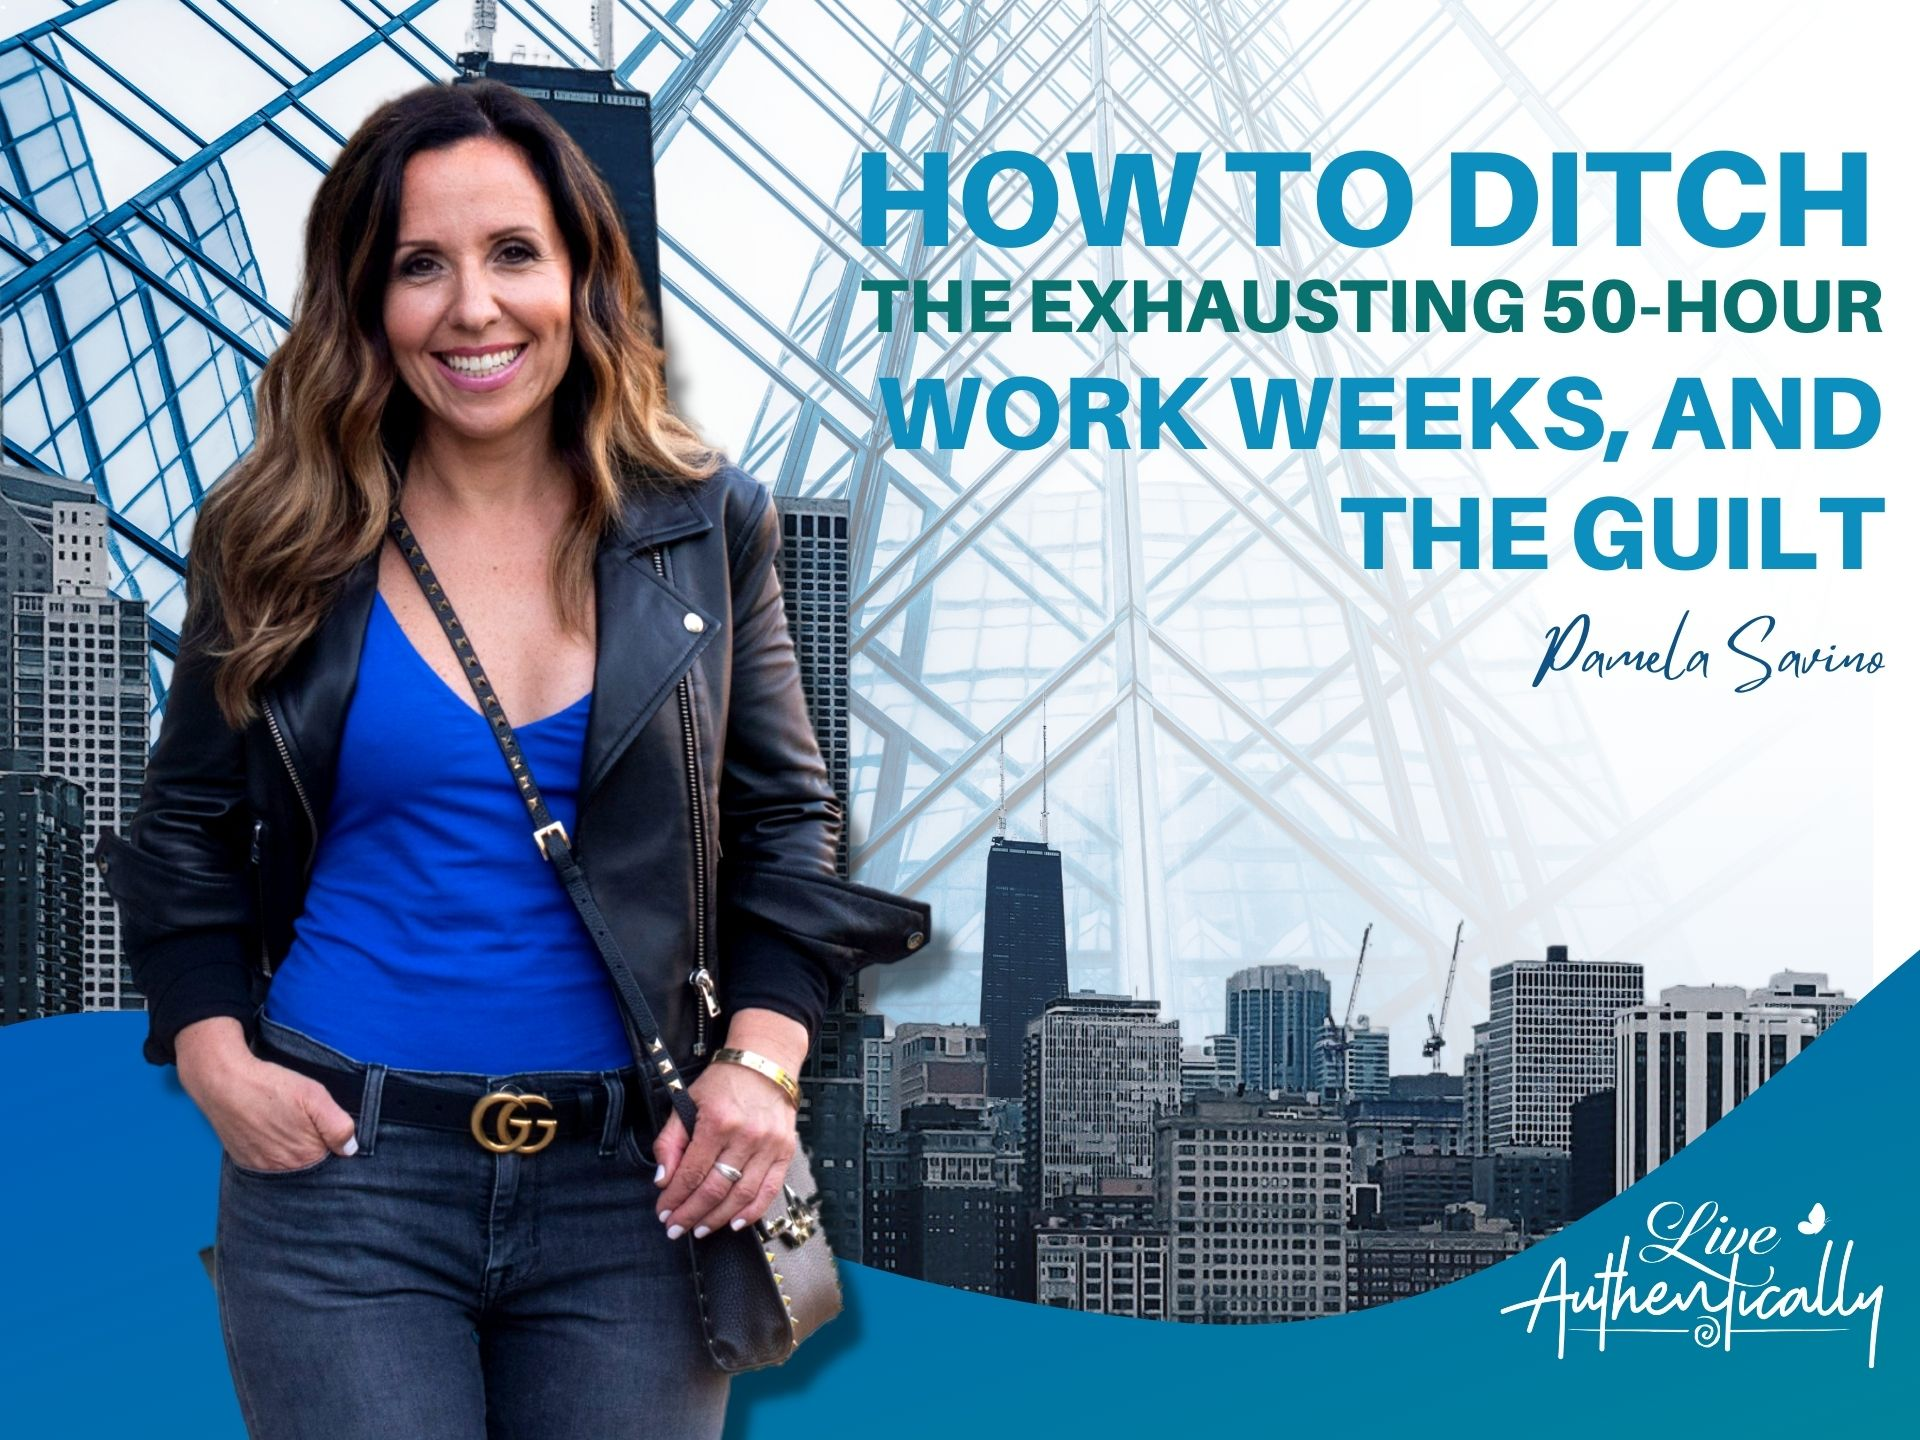 How to Ditch The Exhausting 50-hour Work Weeks, and the Guilt